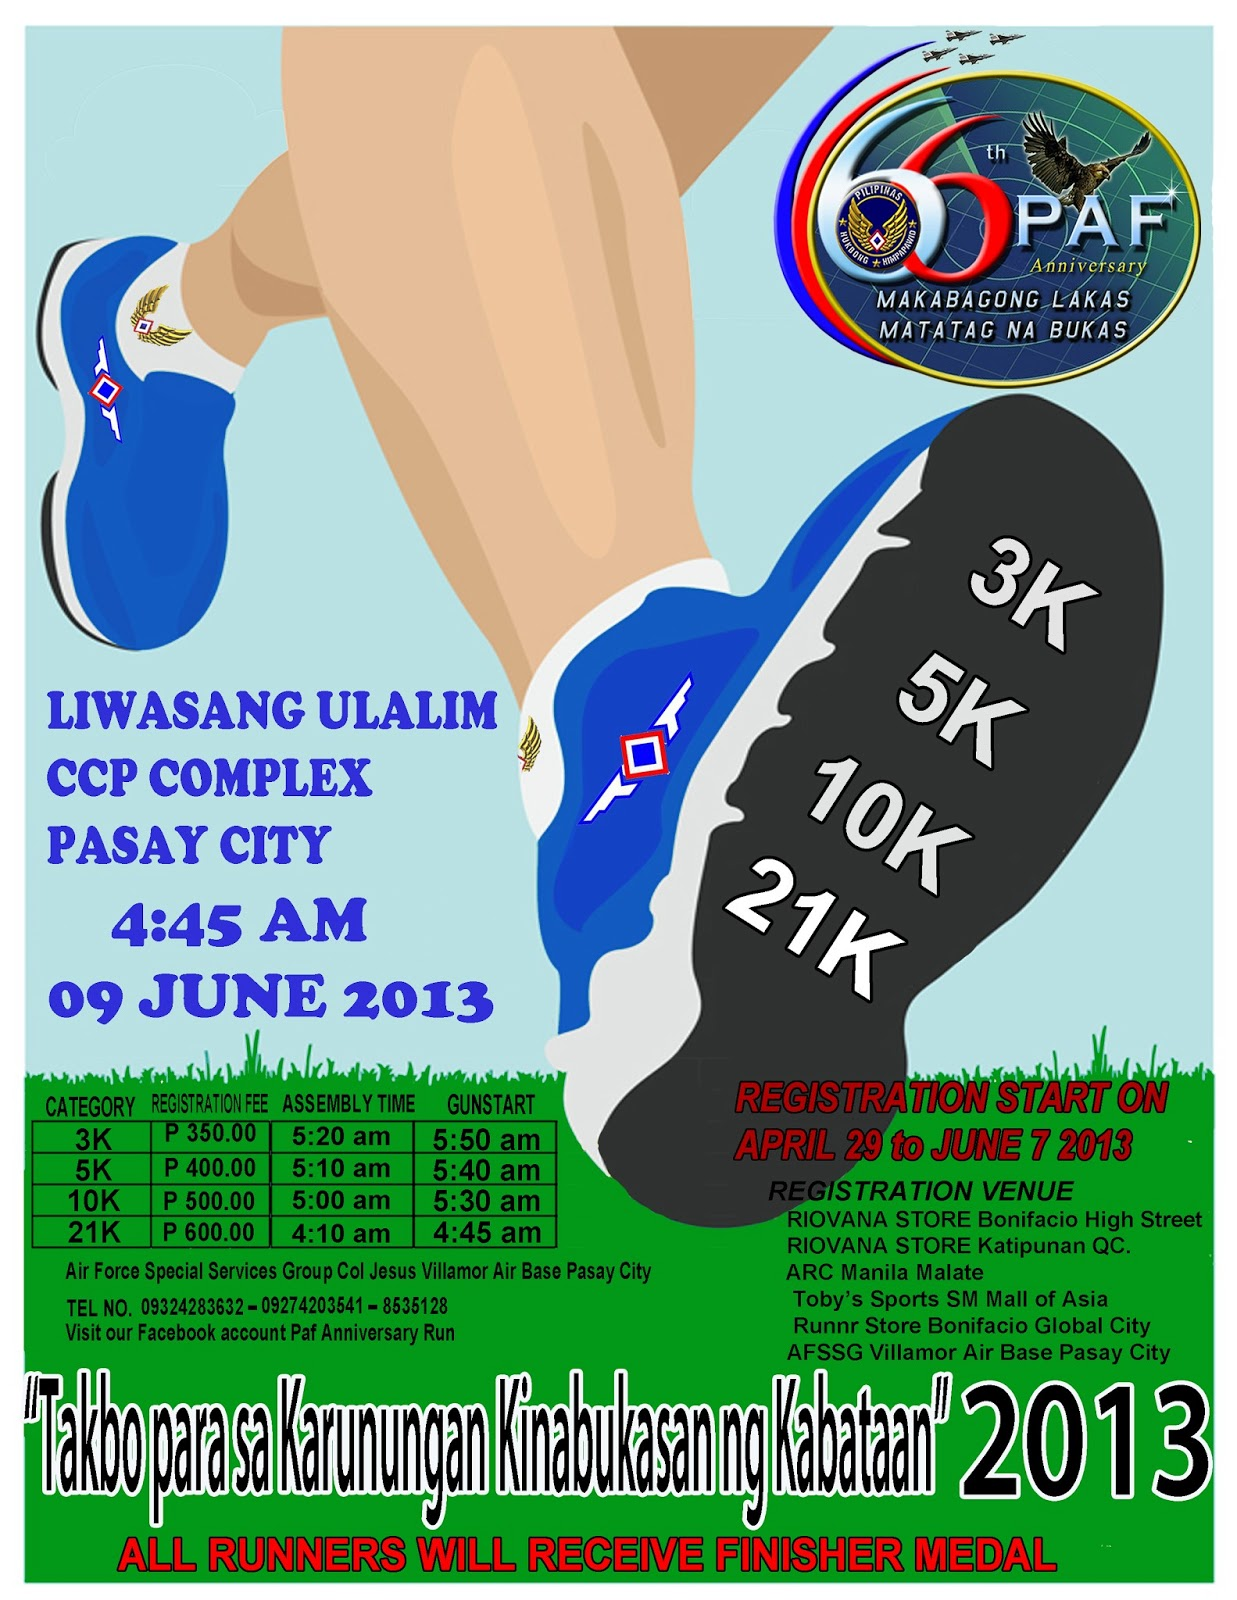 5k Run Flyer Template. Jet Paiso Paf Run 9 Jun 2013 Ccp Complex Pasay City .  Fun Poster Templates